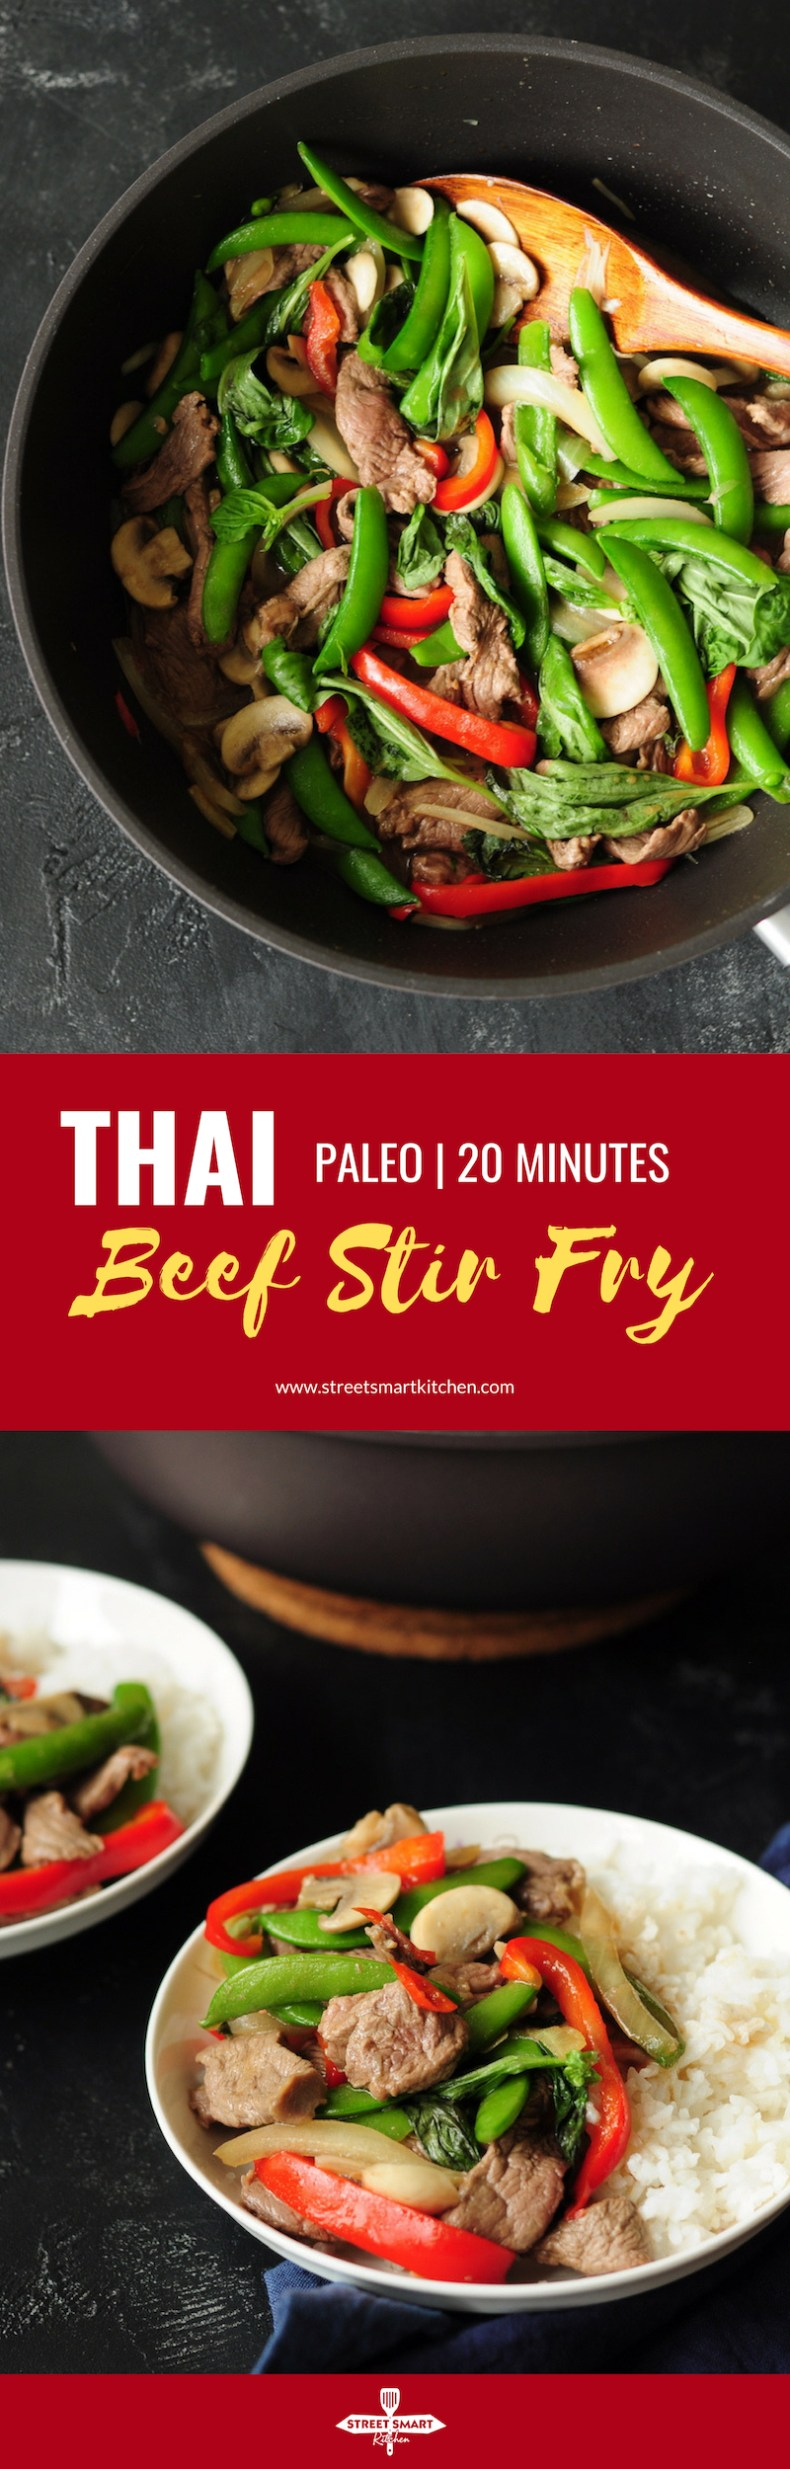 Full of flavor, this super-quick Thai beef stir fry is packed with healthy vegetables. It's a great weekday dinner option. Ready in 20 minutes.